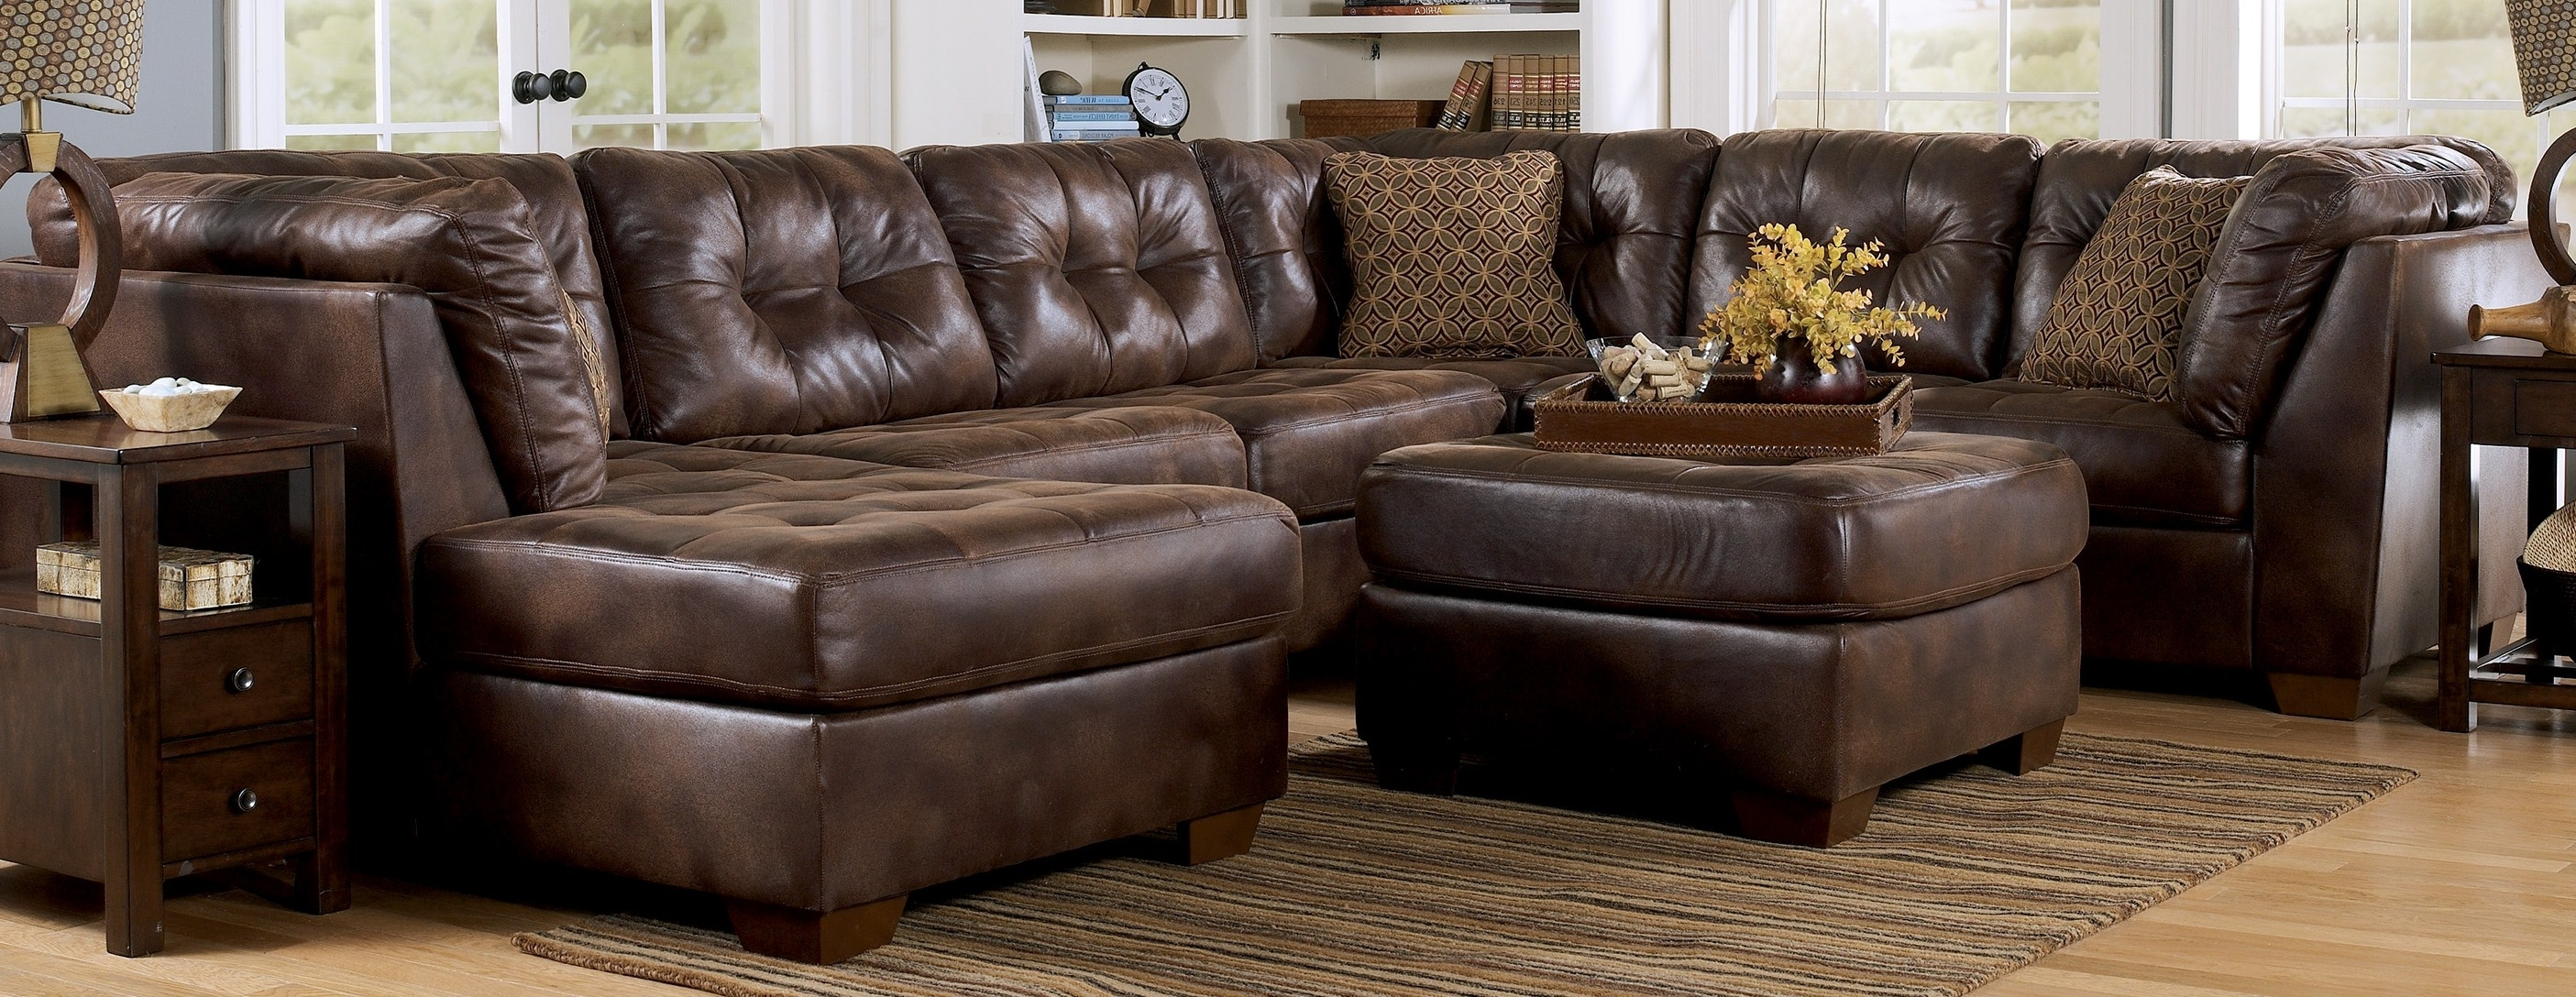 Sectionals With Chaise And Ottoman Inside Best And Newest Big Lots Recliners Ashley Furniture Sectional Sofas Cheap (View 13 of 20)